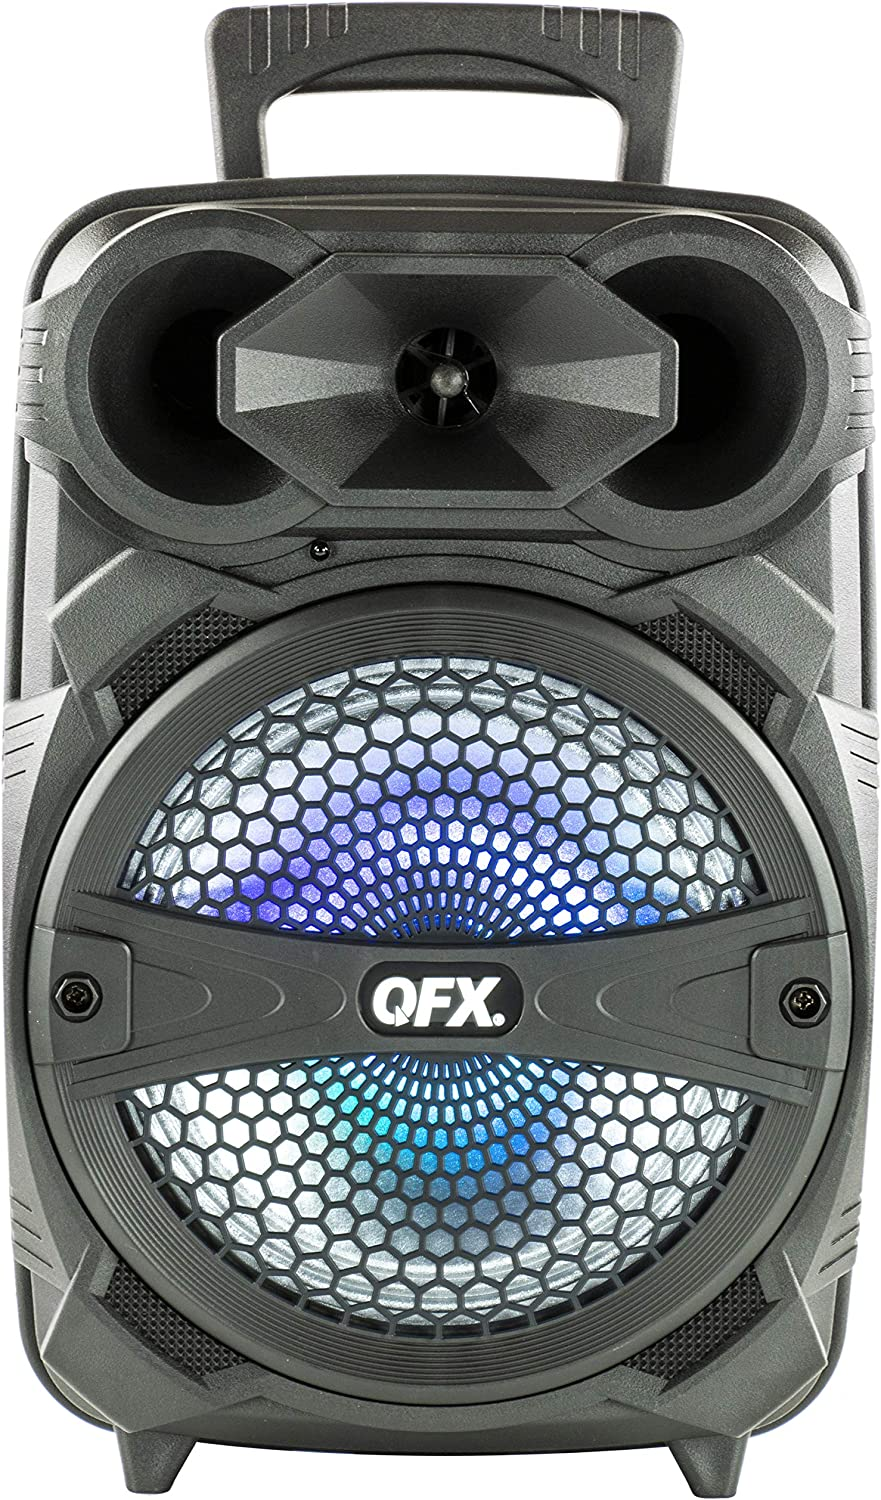 "QFX PBX-81 8"" Portable Bluetooth Party Sound System with Microphone"